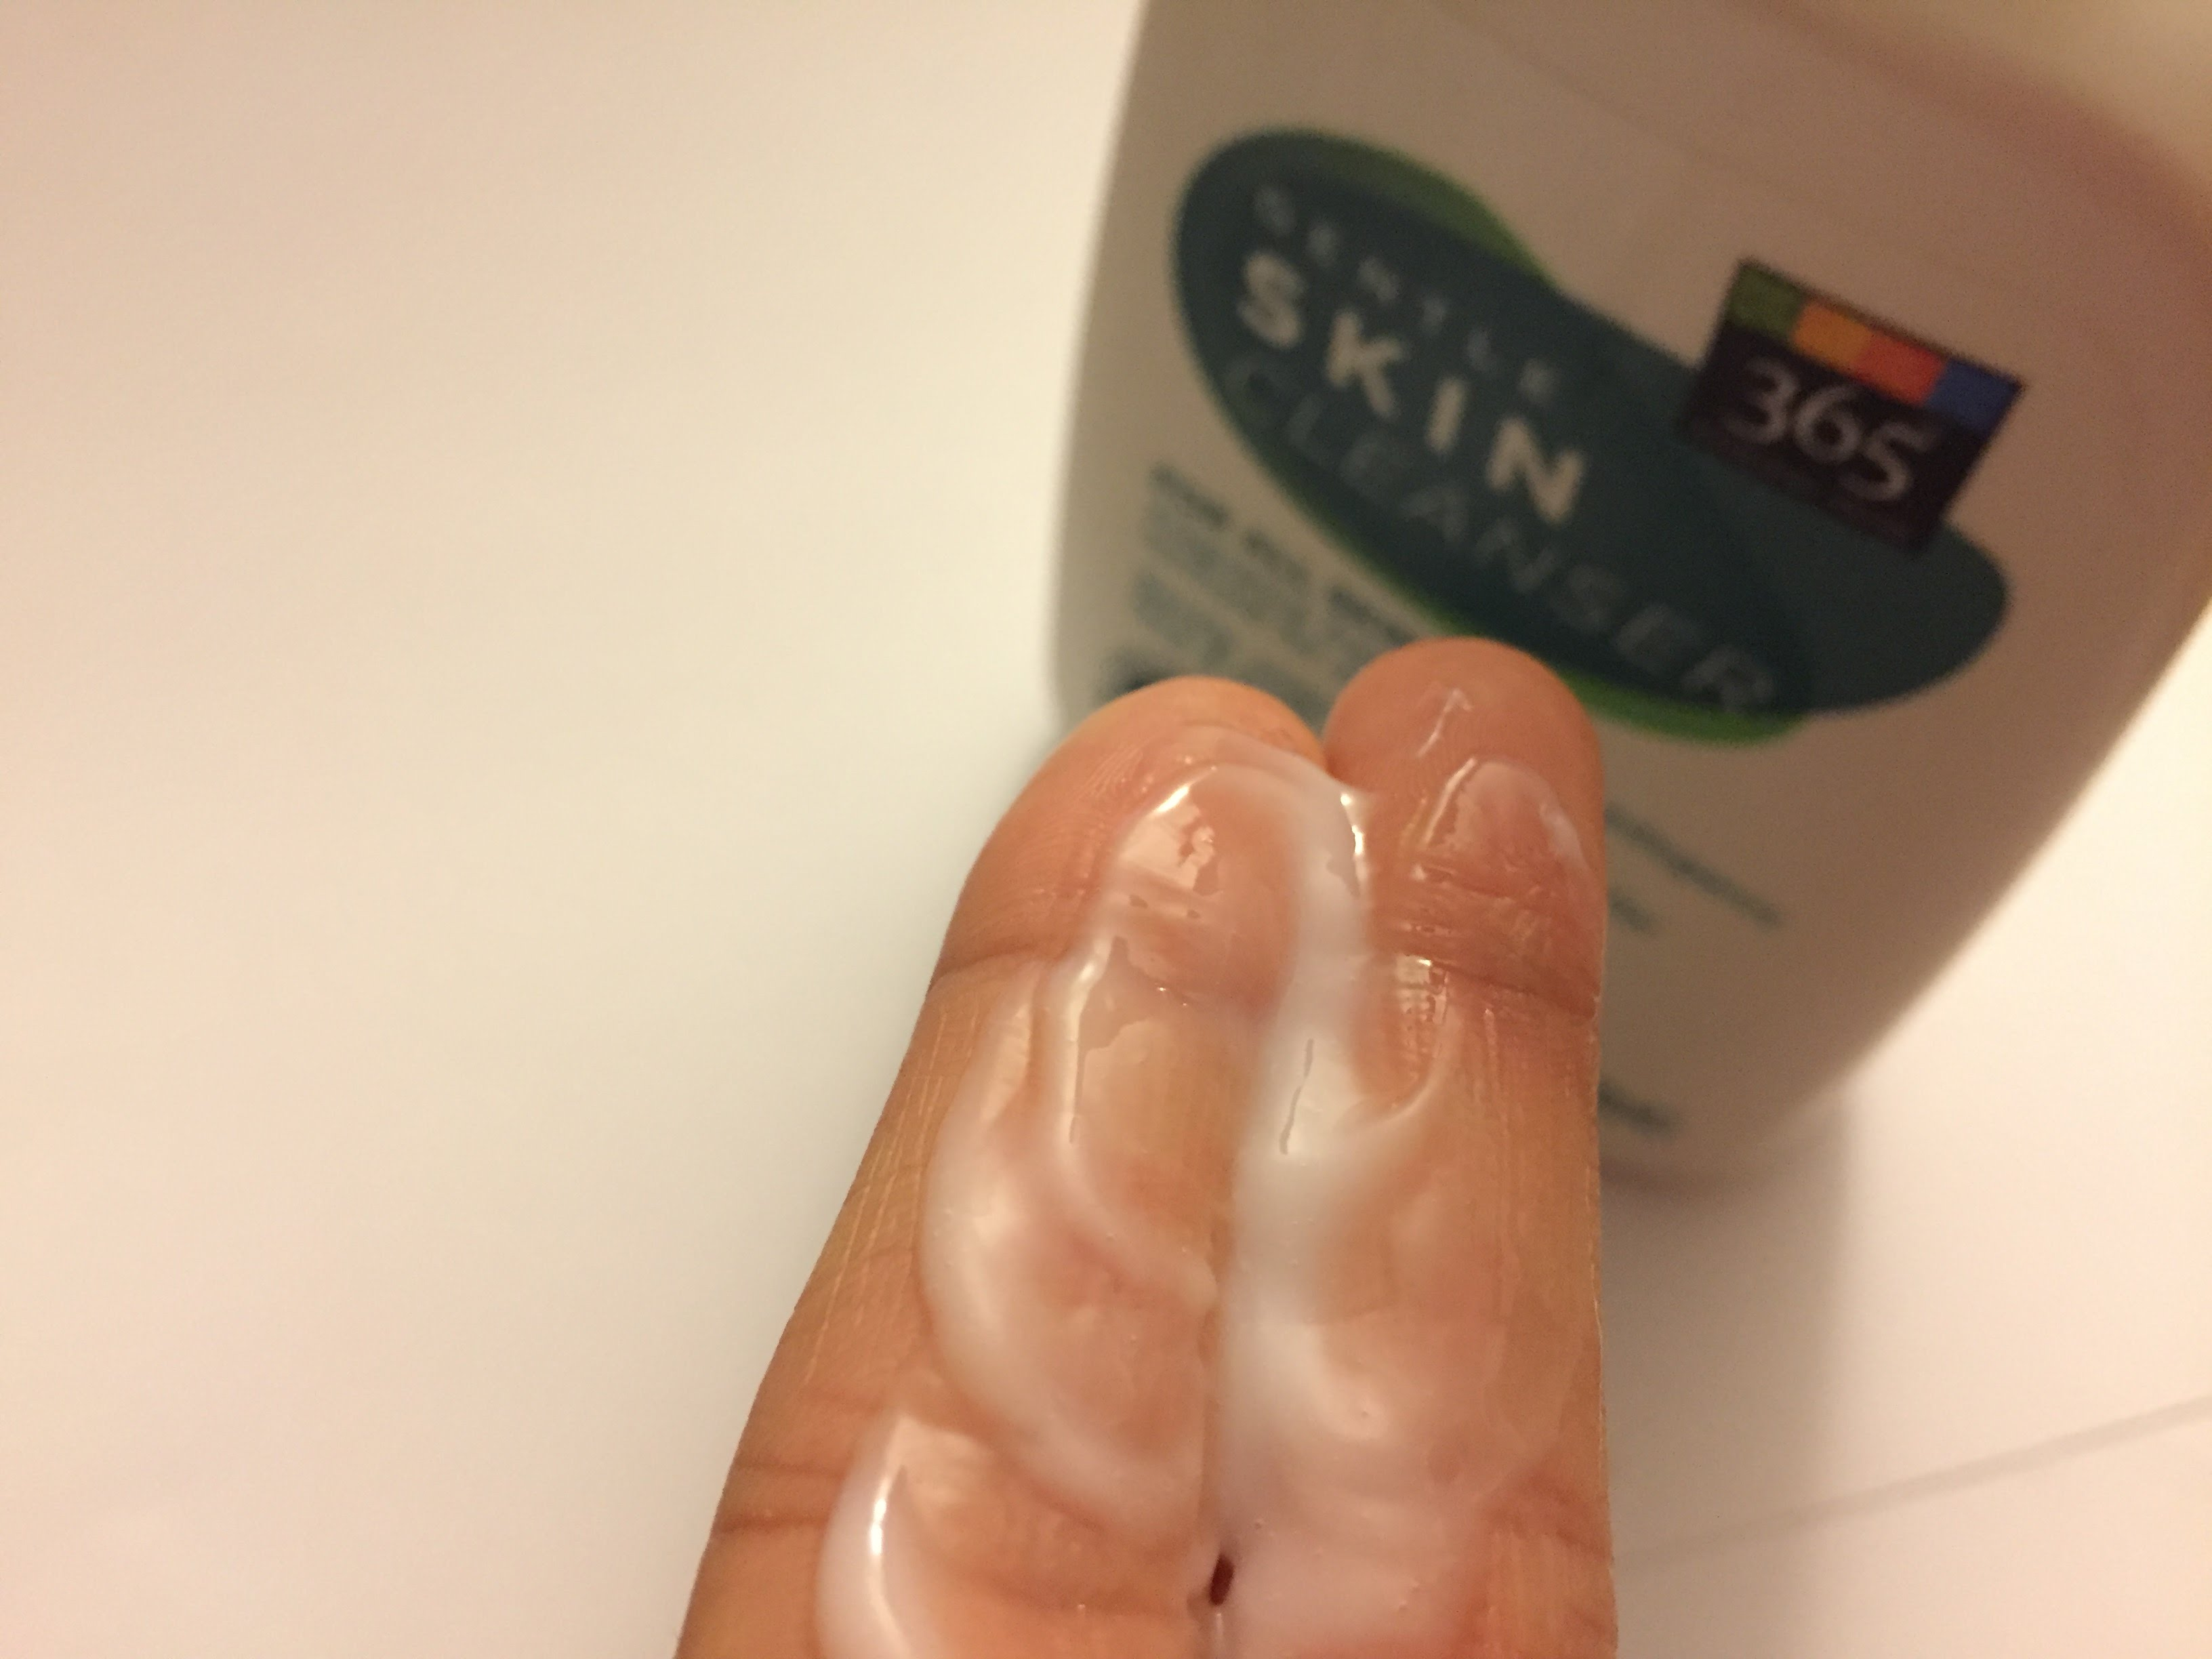 Whole Foods 365 Everyday Value Gentle Skin Cleanser review